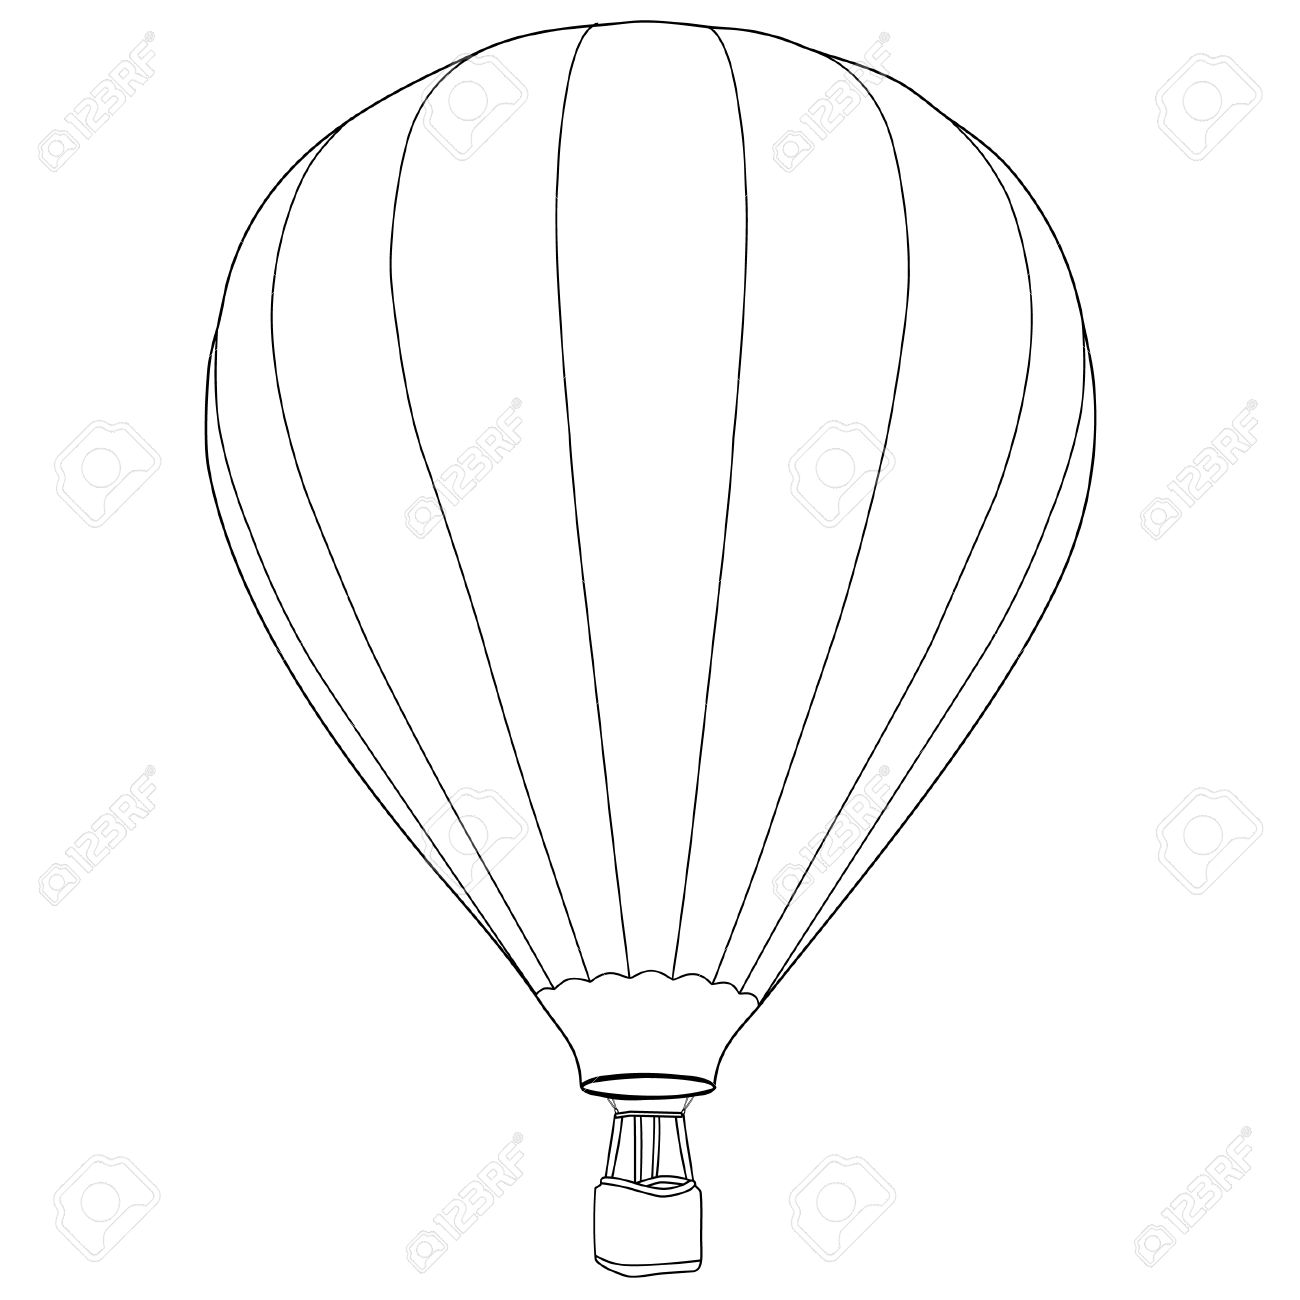 1300x1300 Vintage Hot Air Balloon With Basket Vector Icon Isolated, Summer